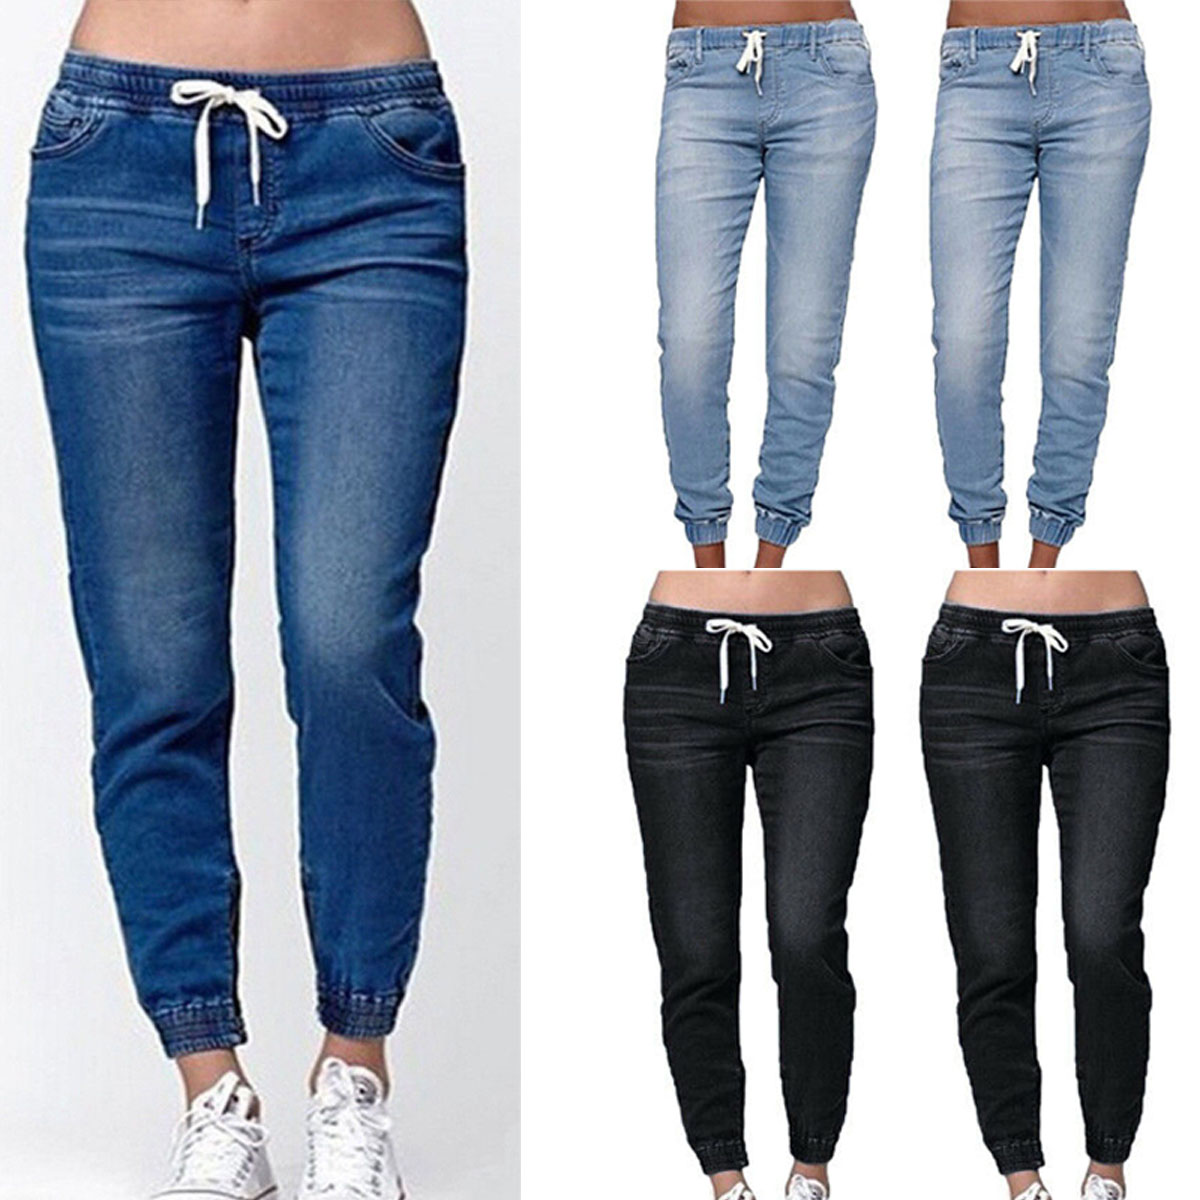 limited sale world-wide free shipping finest fabrics Details about Fashion Women's Casual Denim Jogger Pants Ladies Drawstring  Elastic Waist Jeans